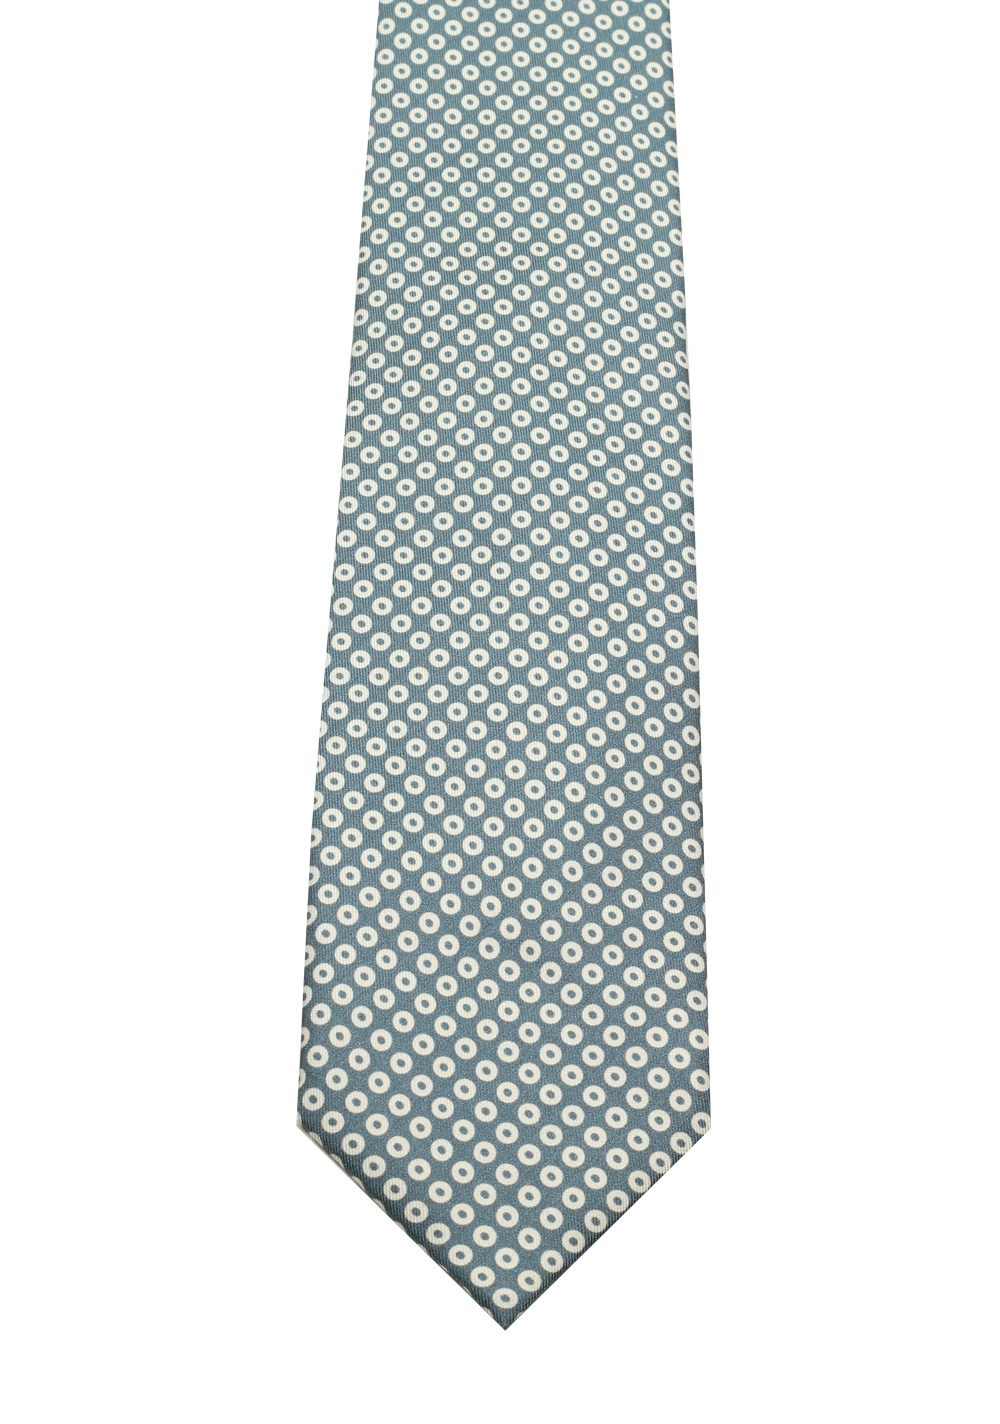 TOM FORD Patterned Blue Tie In Silk | Costume Limité